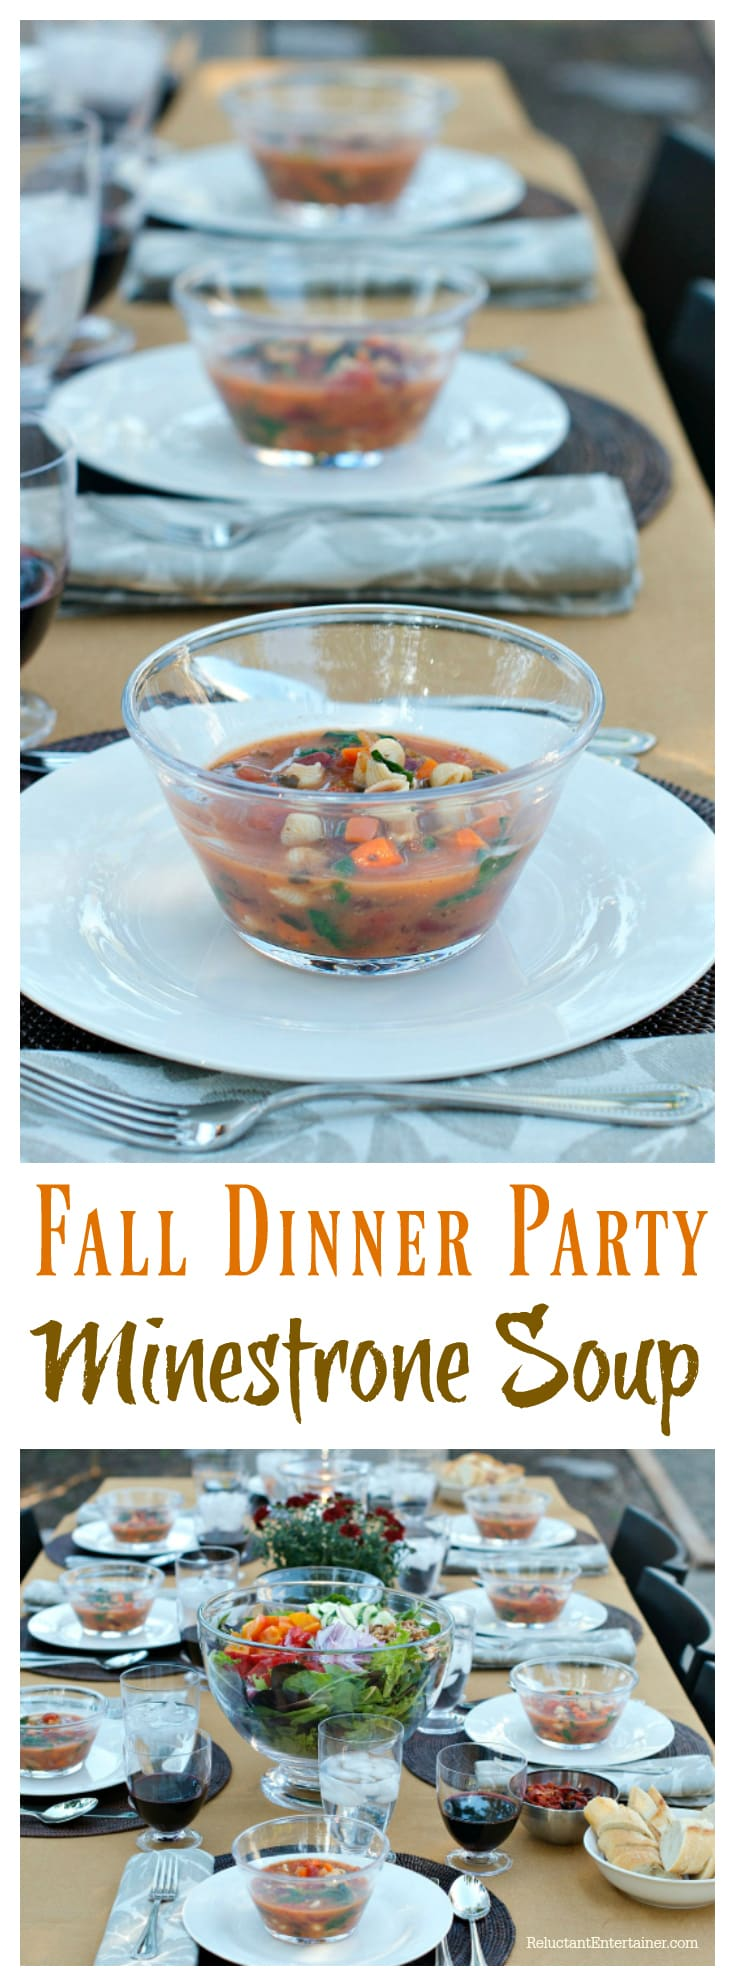 dinner party recipes fall dinner minestrone soup recipe 12414